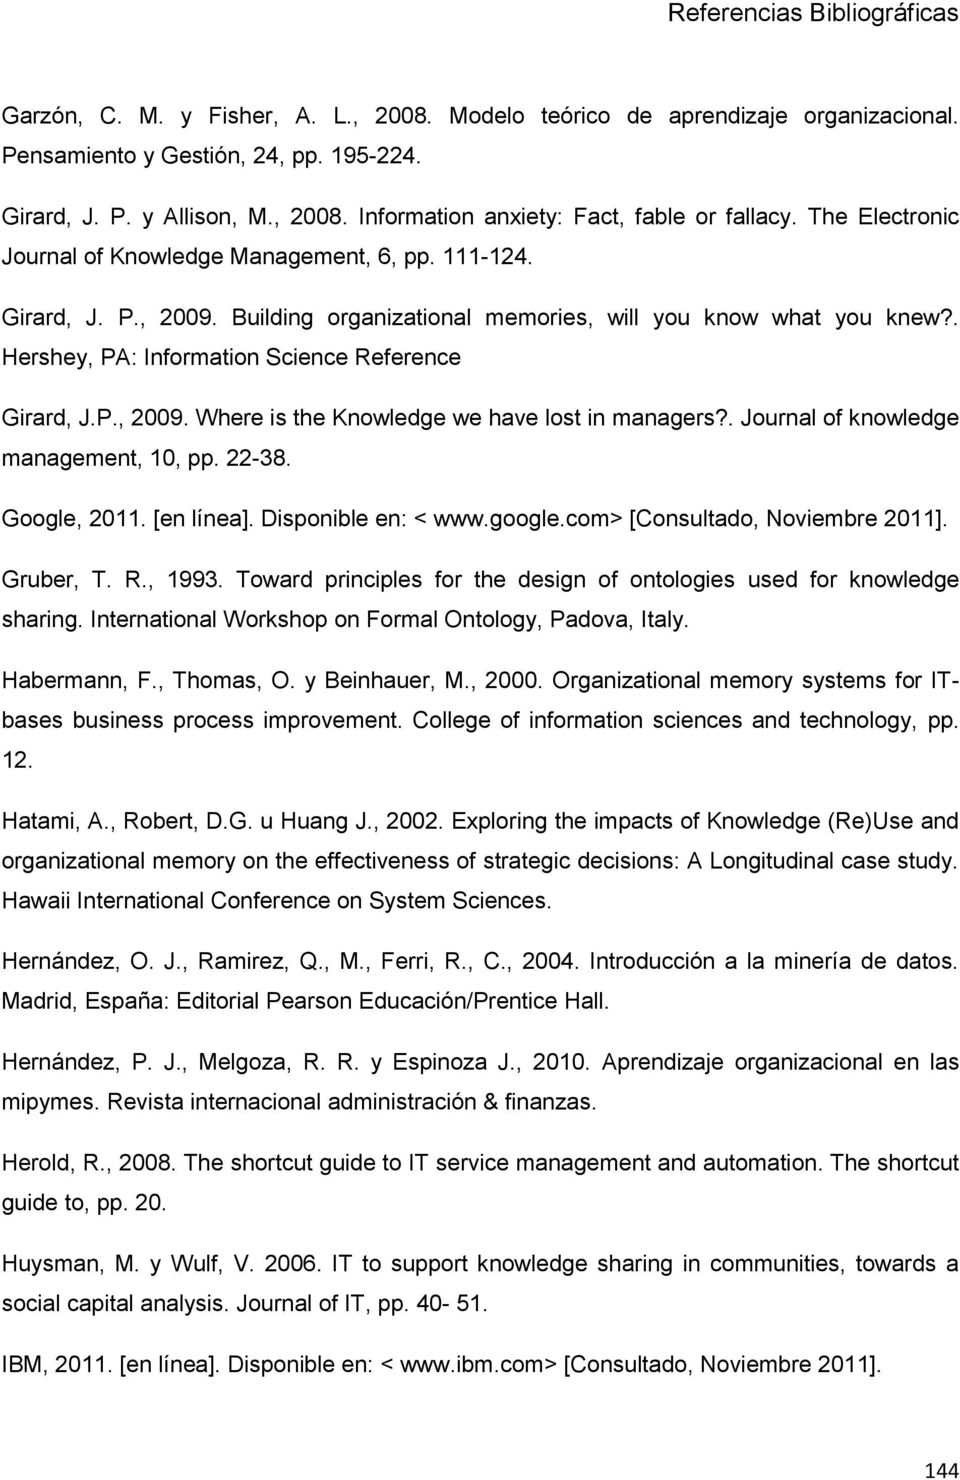 . Hershey, PA: Information Science Reference Girard, J.P., 2009. Where is the Knowledge we have lost in managers?. Journal of knowledge management, 10, pp. 22-38. Google, 2011. [en línea].